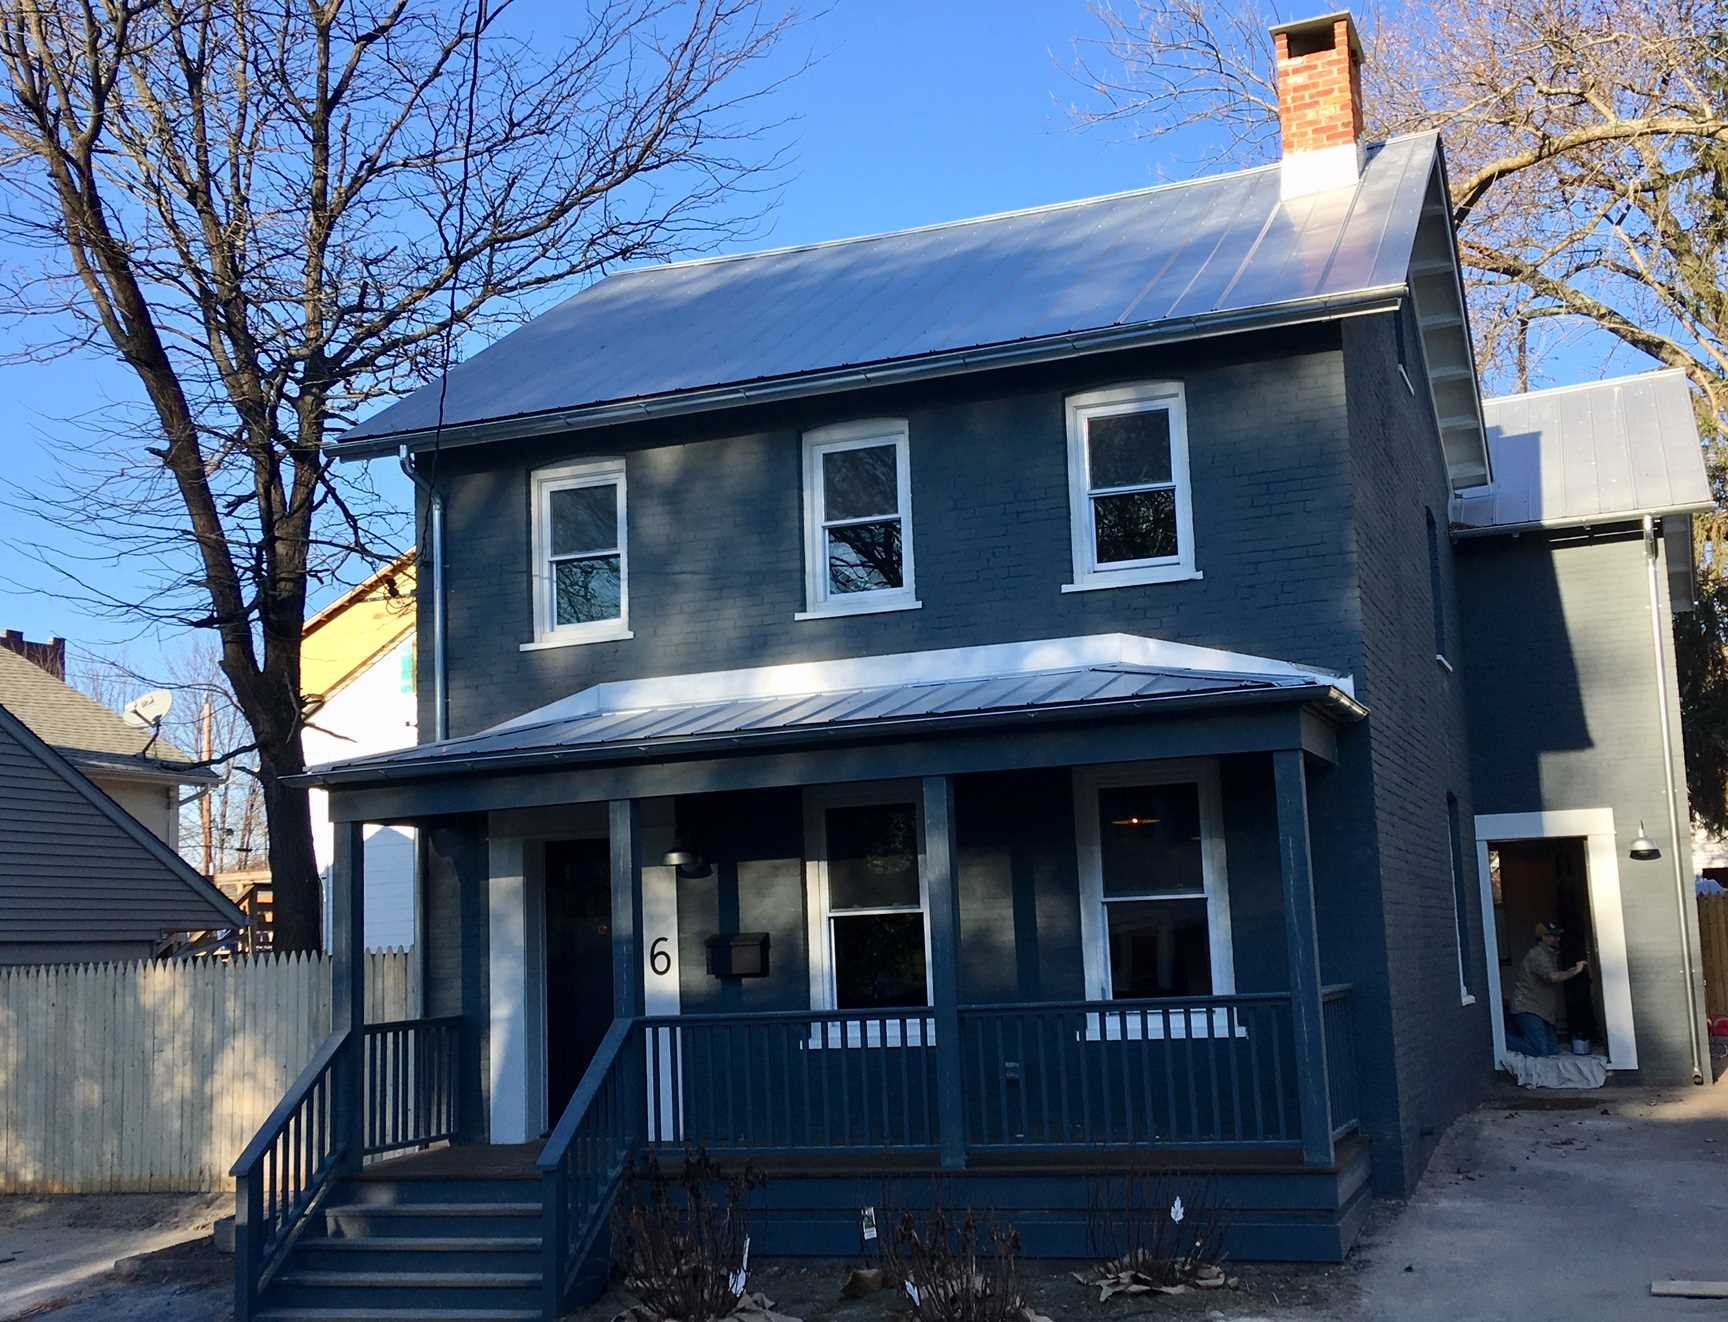 Single Family Home for Sale at 6 CENTER Street 6 CENTER Street Beacon, New York 12508 United States